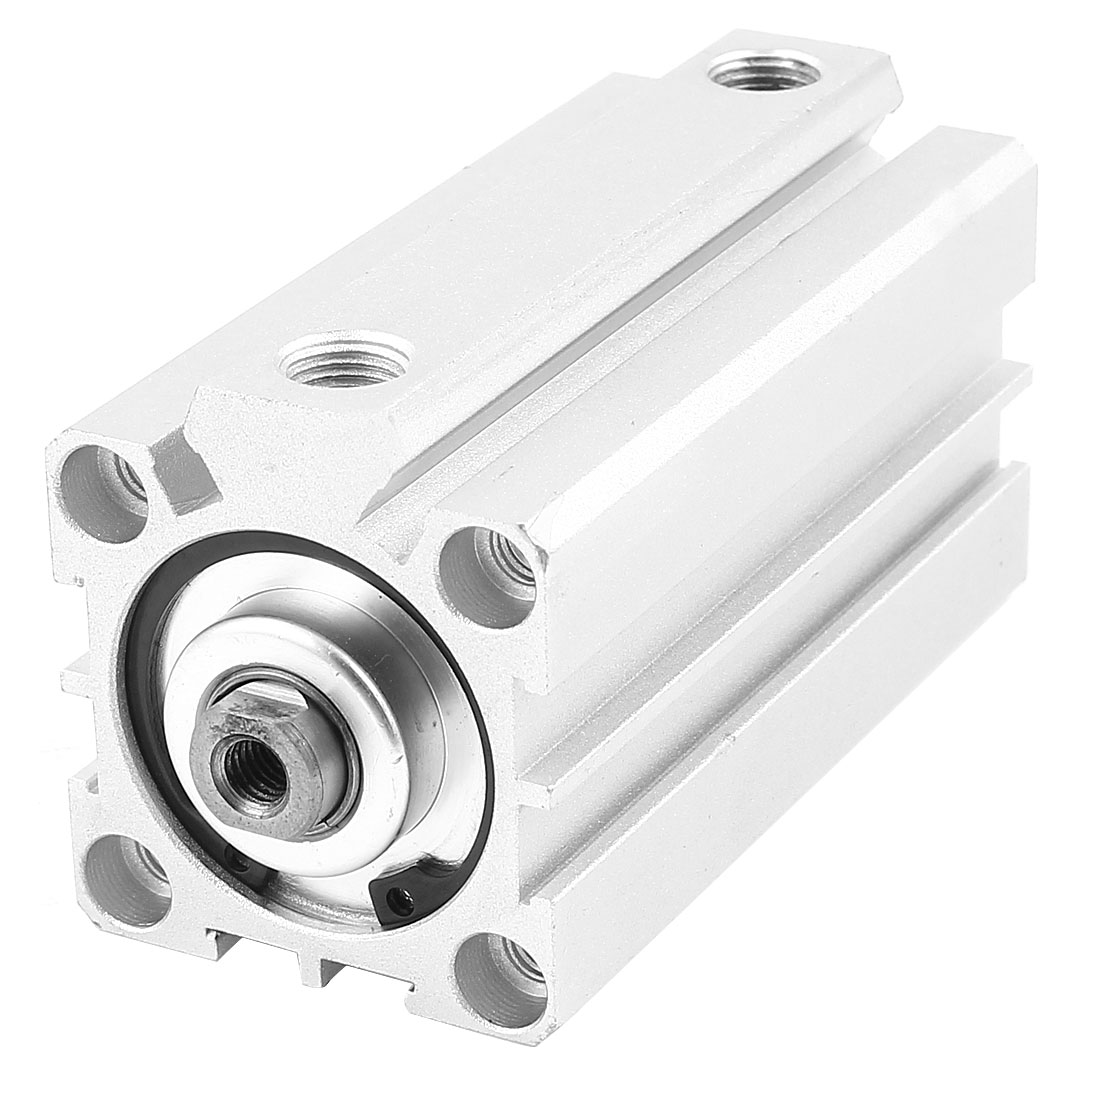 SDA32x65 32mm Bore 65mm Stroke Single Rod Aluminum Alloy Pneumatic Air Cylinder